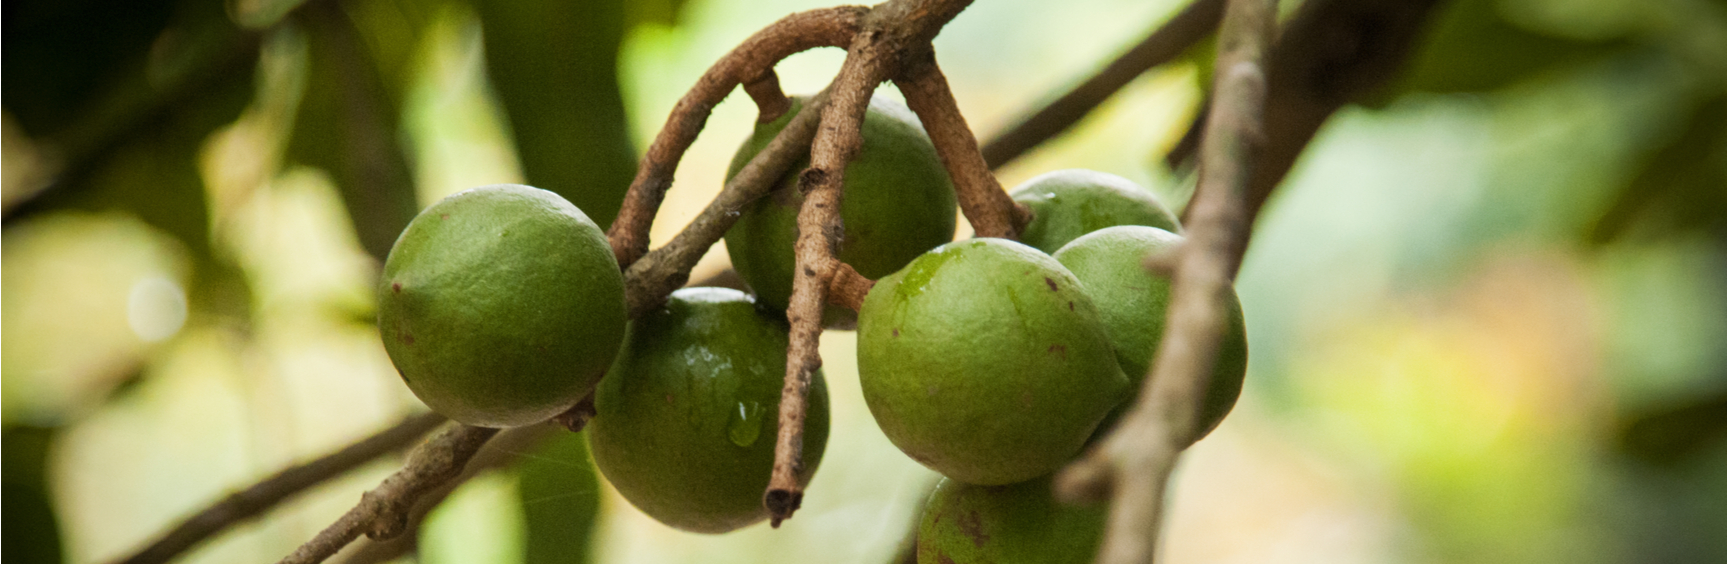 macadamia-nuts-growing-sustainability